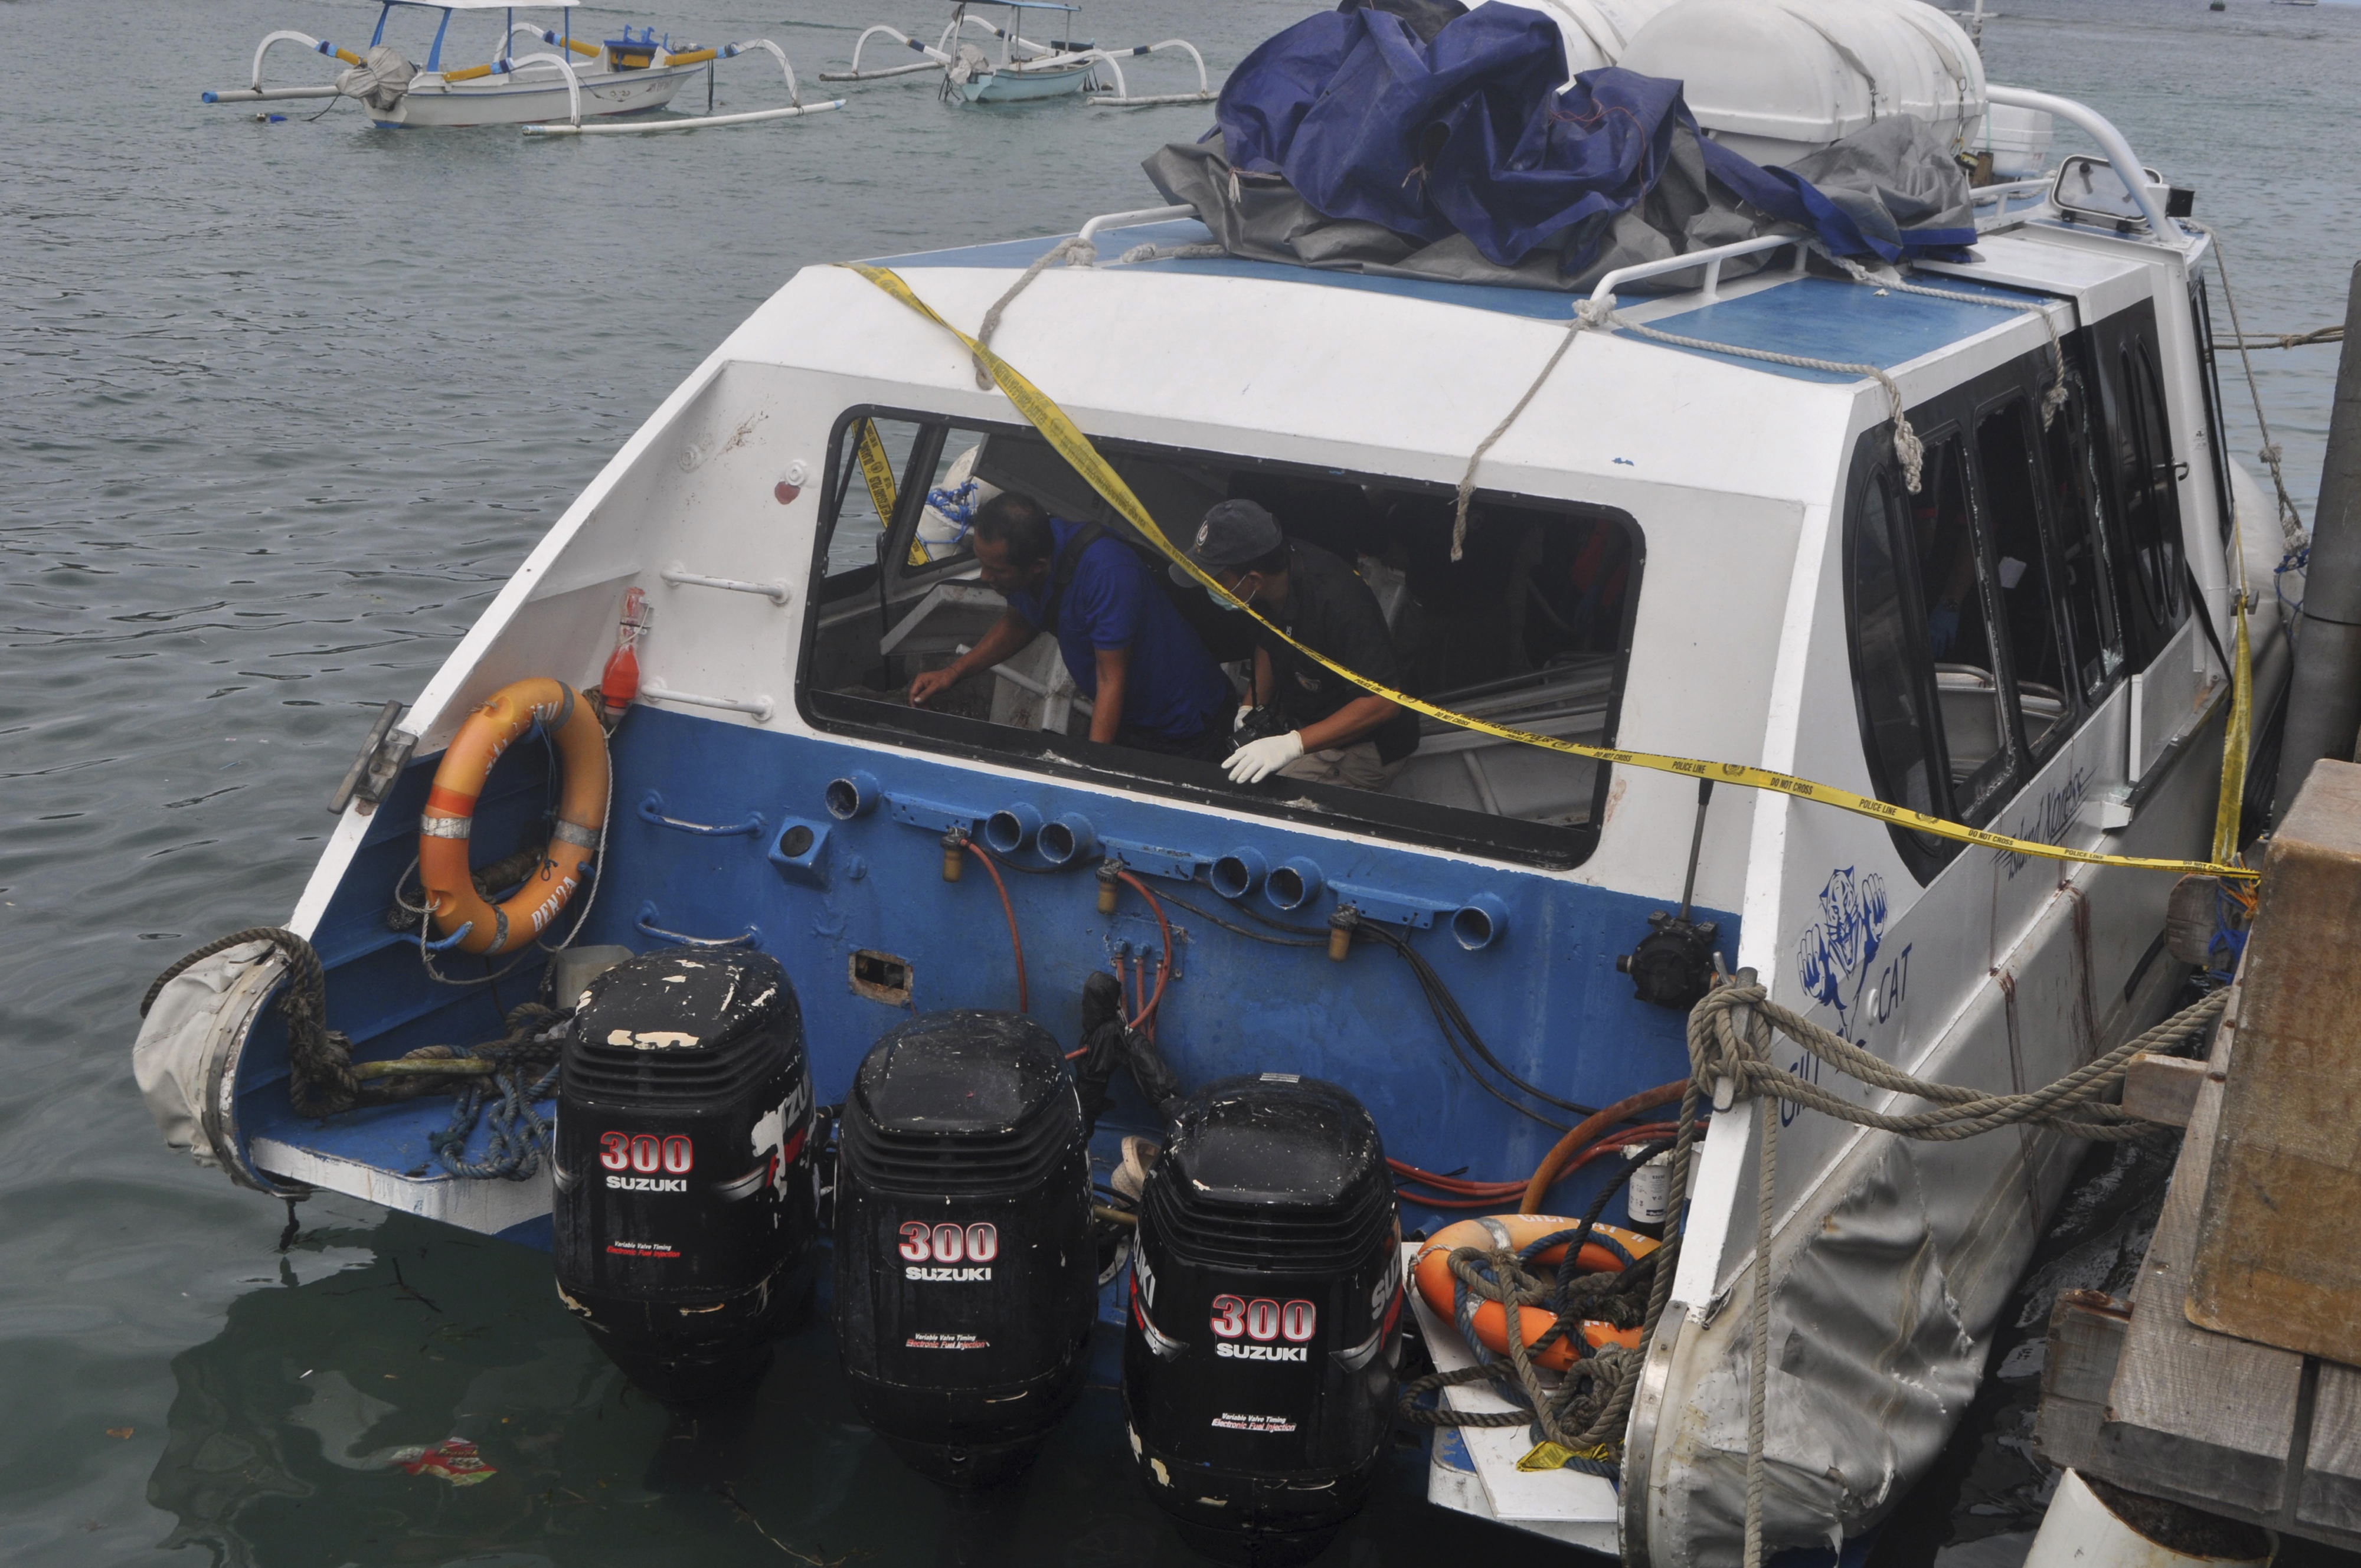 Police investigators examine the Gili Cat 2 boat following an explosion in Bali, Indonesia, Thursday, Sept. 15, 2016